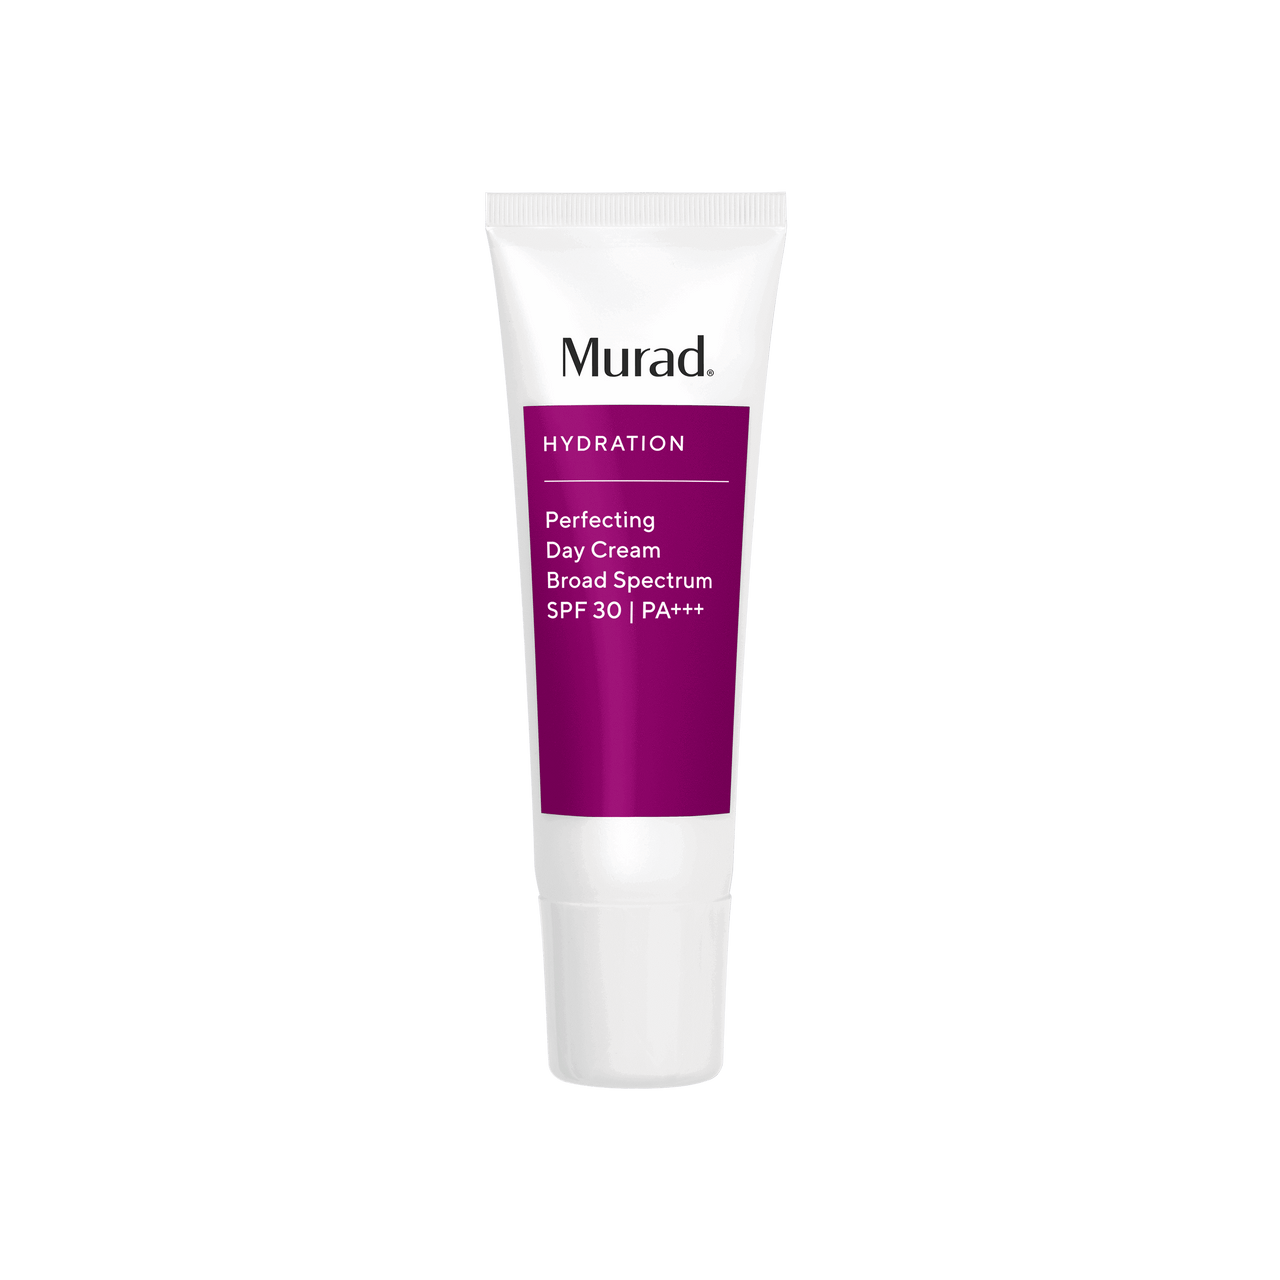 Murad Perfecting Day Cream - 1.7 Fl. Oz. - Anti-Aging Moisturizer That Hydrates & Protects Skin